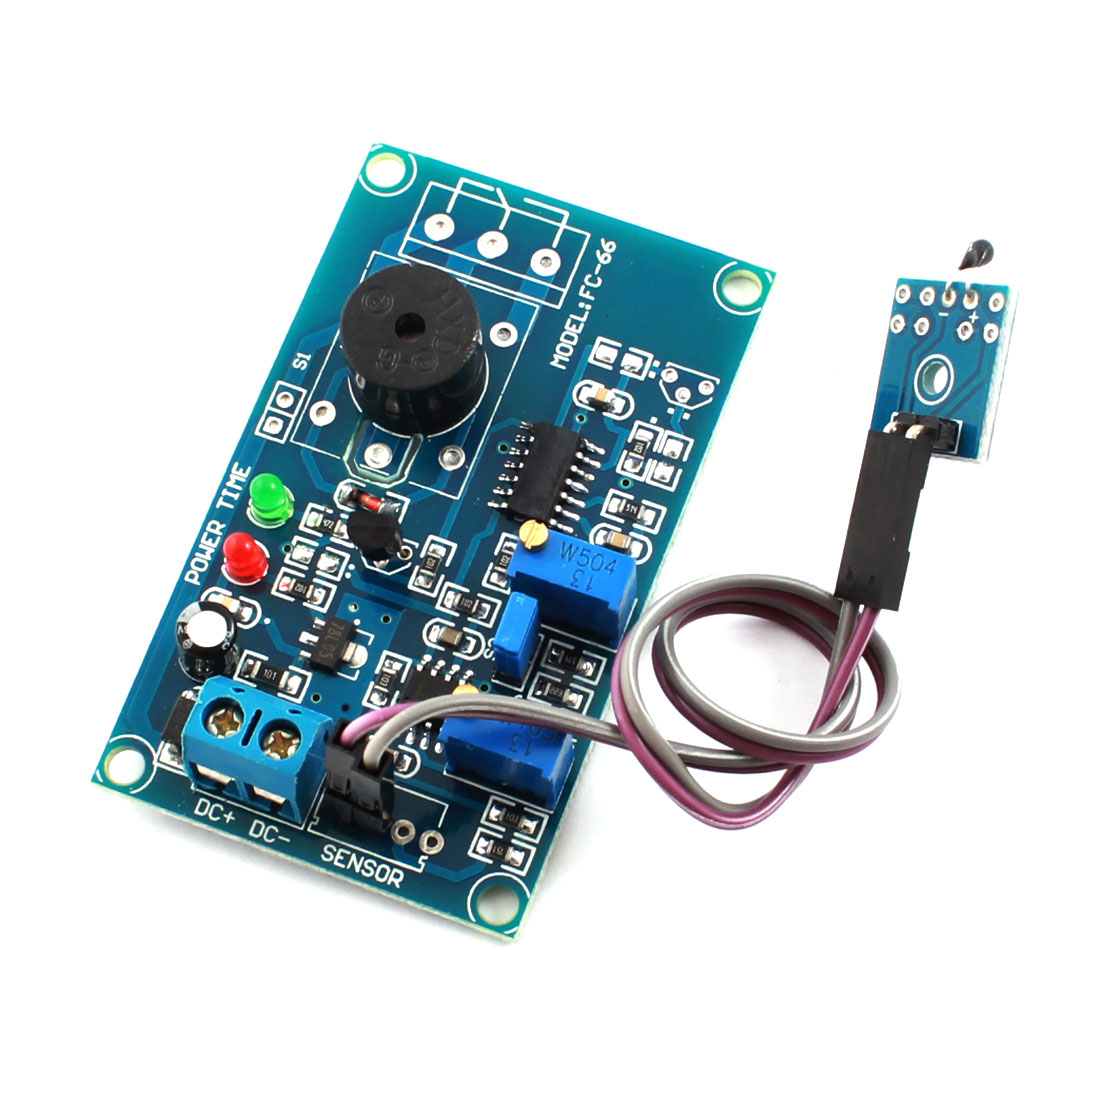 DC12V 0-20S High Temperature Trigger Pyroelectricity Delay Alarm Module